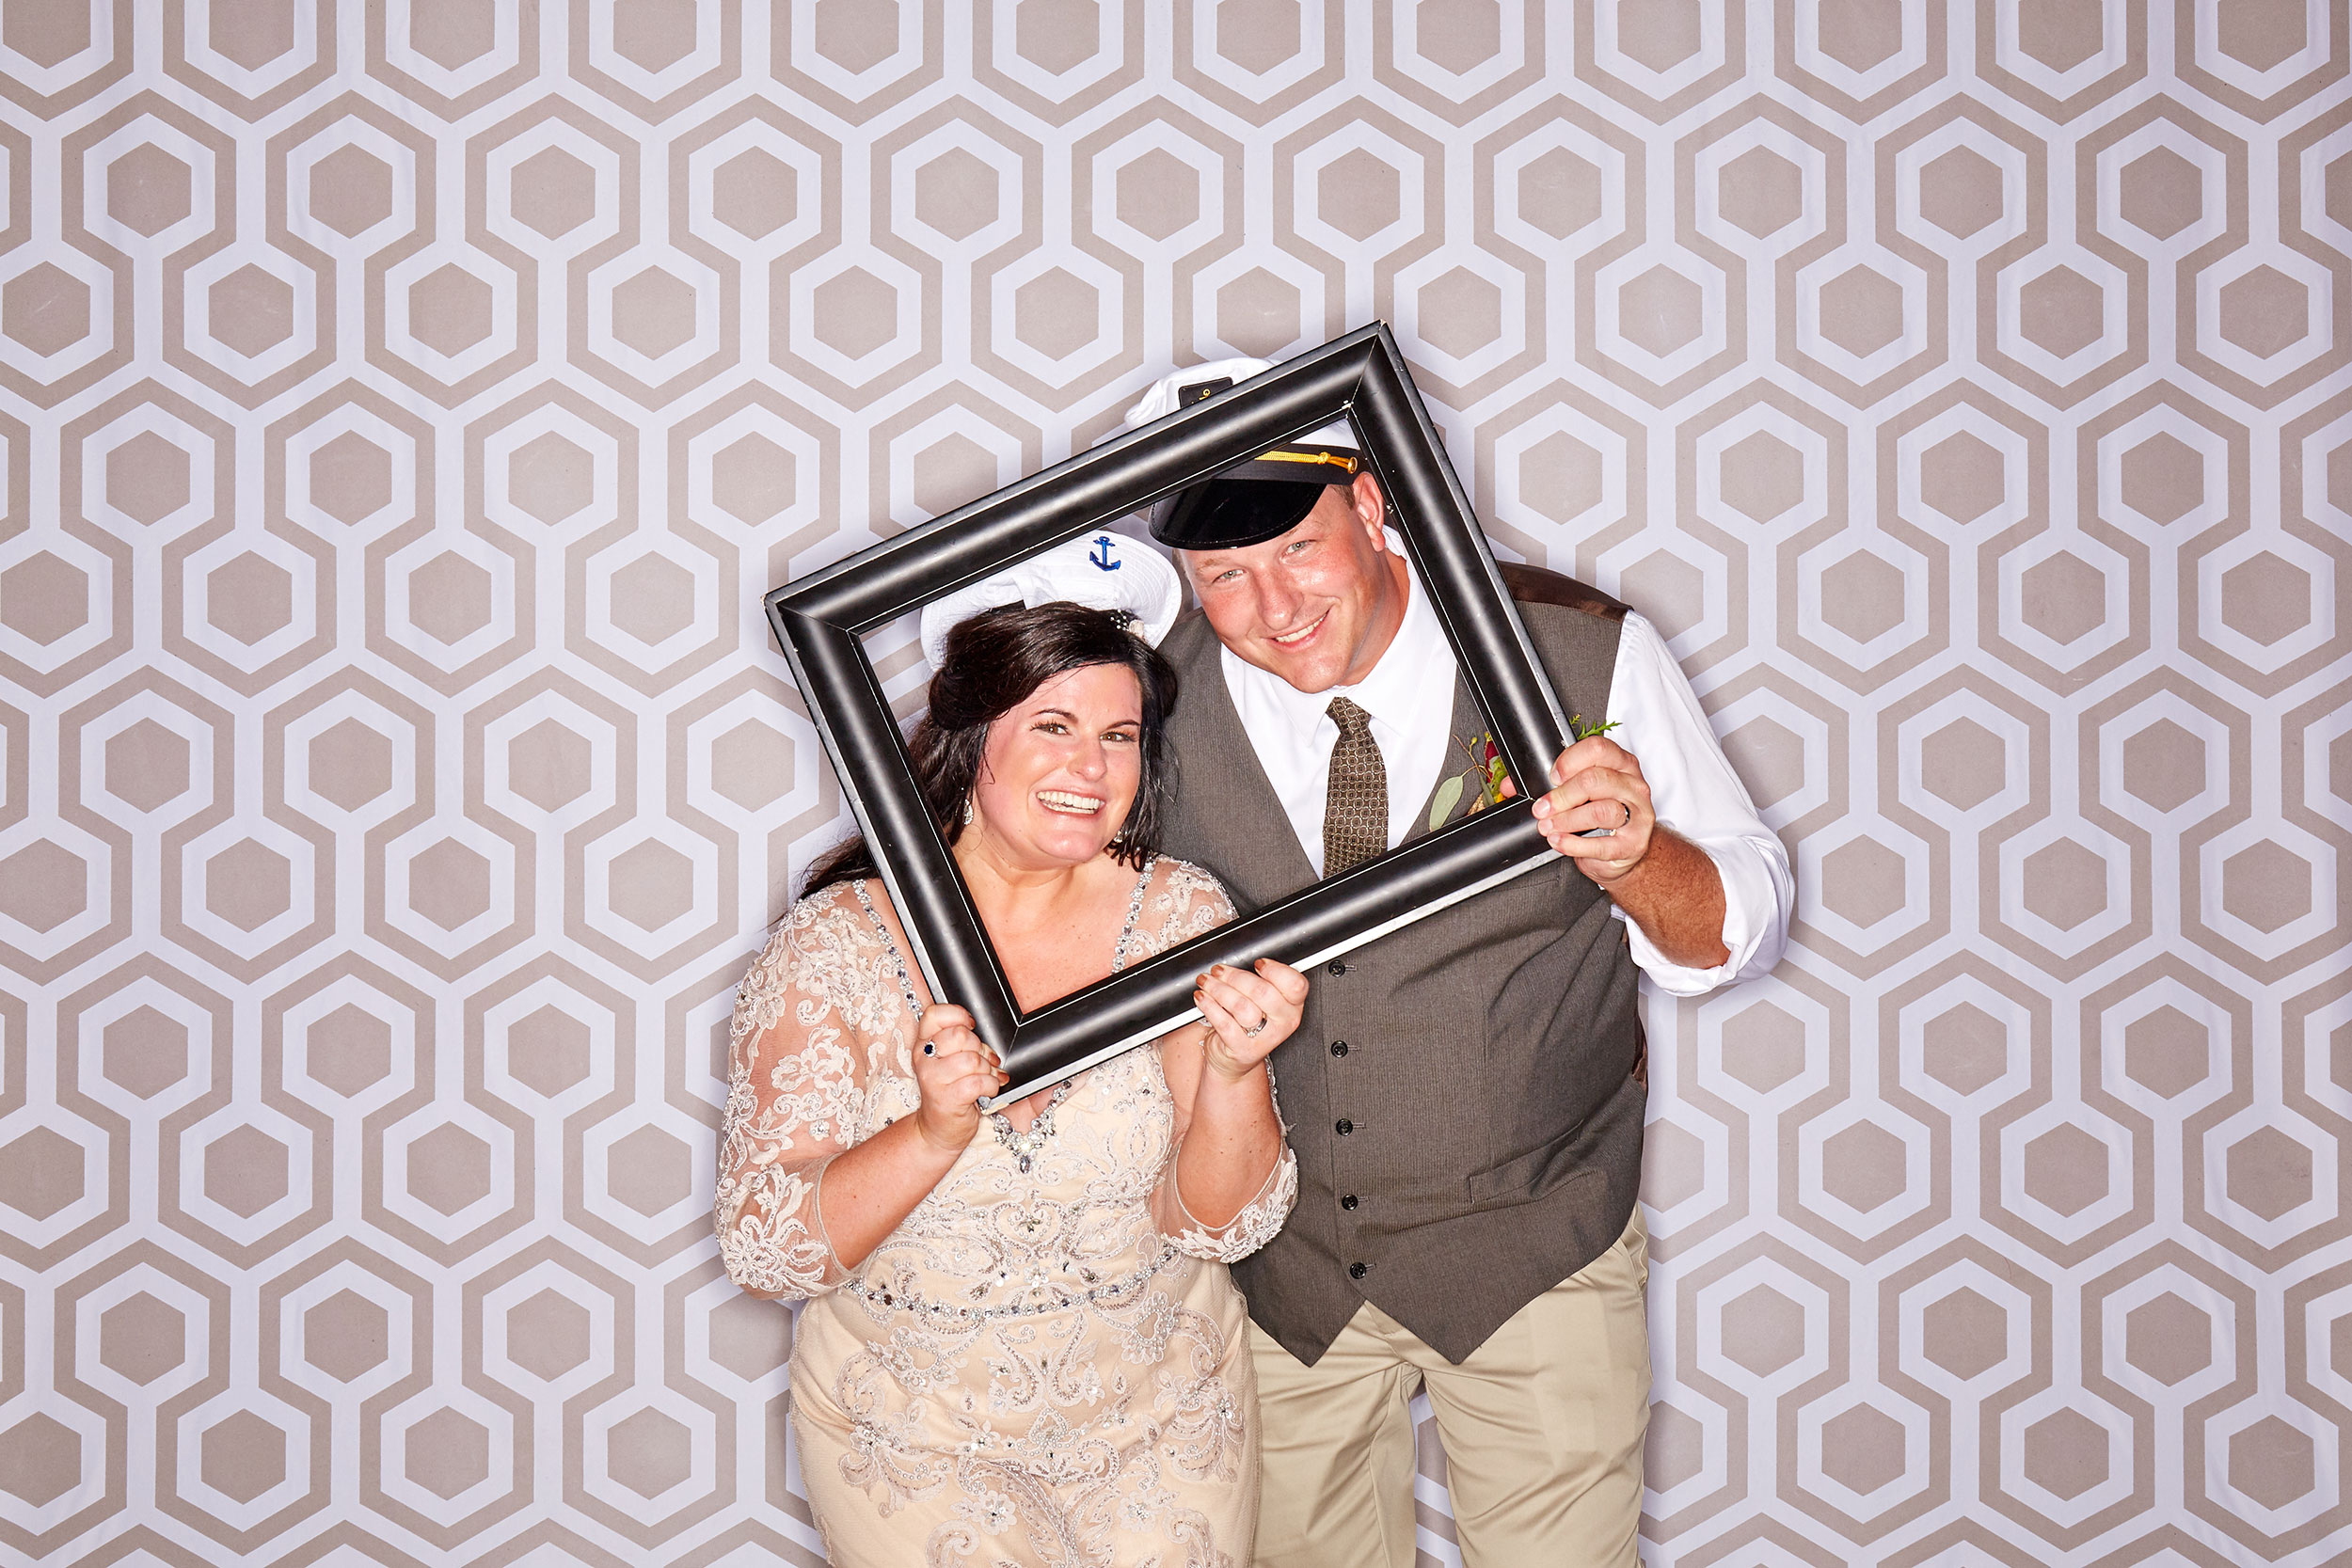 louisville-photo-booth-115.jpg